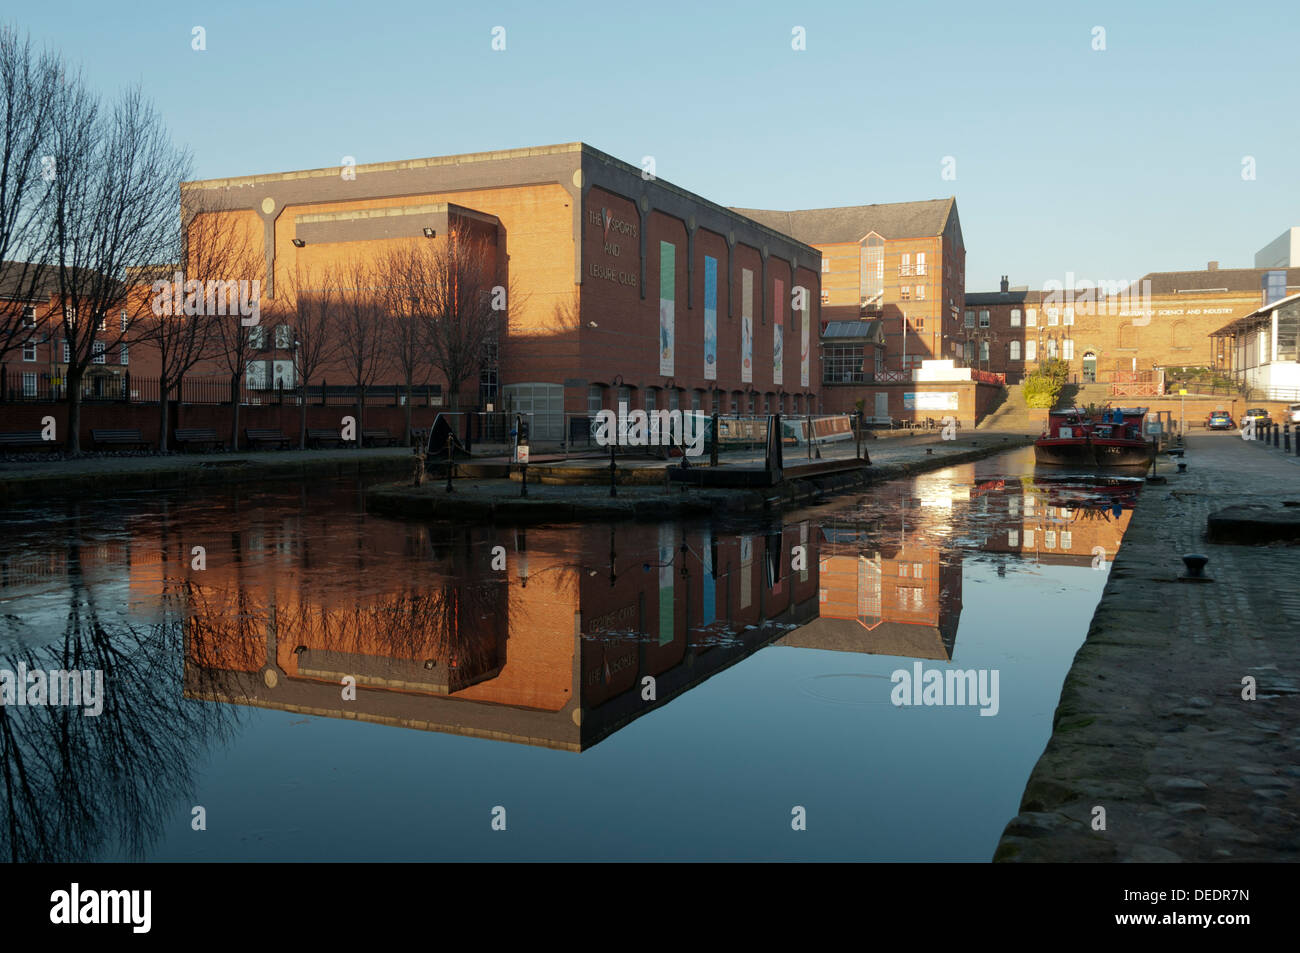 Reflections in Castlefield Basin, Manchester, England, UK. - Stock Image